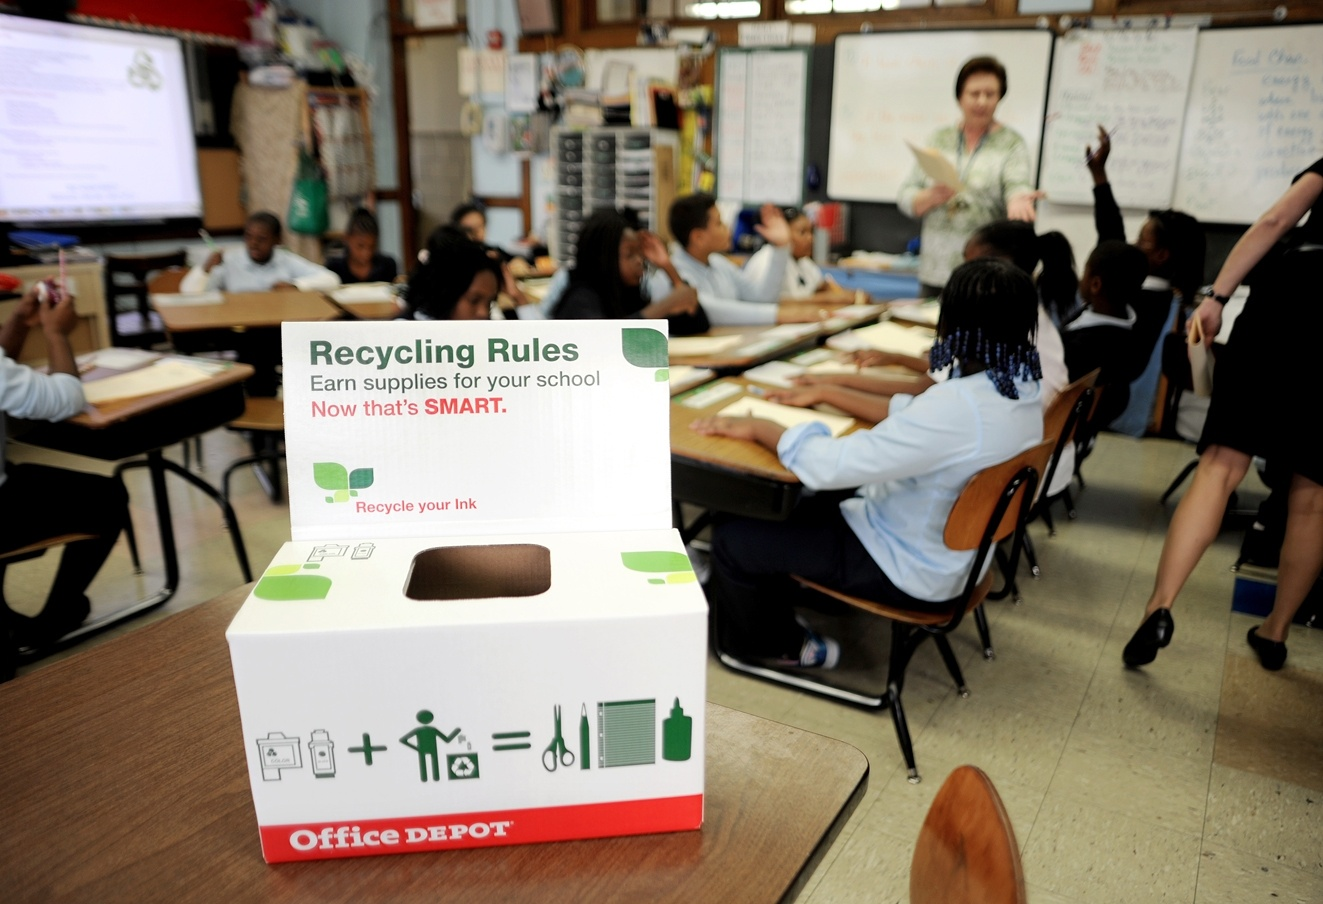 10 ways to save big on printer ink and toner – Recycling rules toner box in a classroom